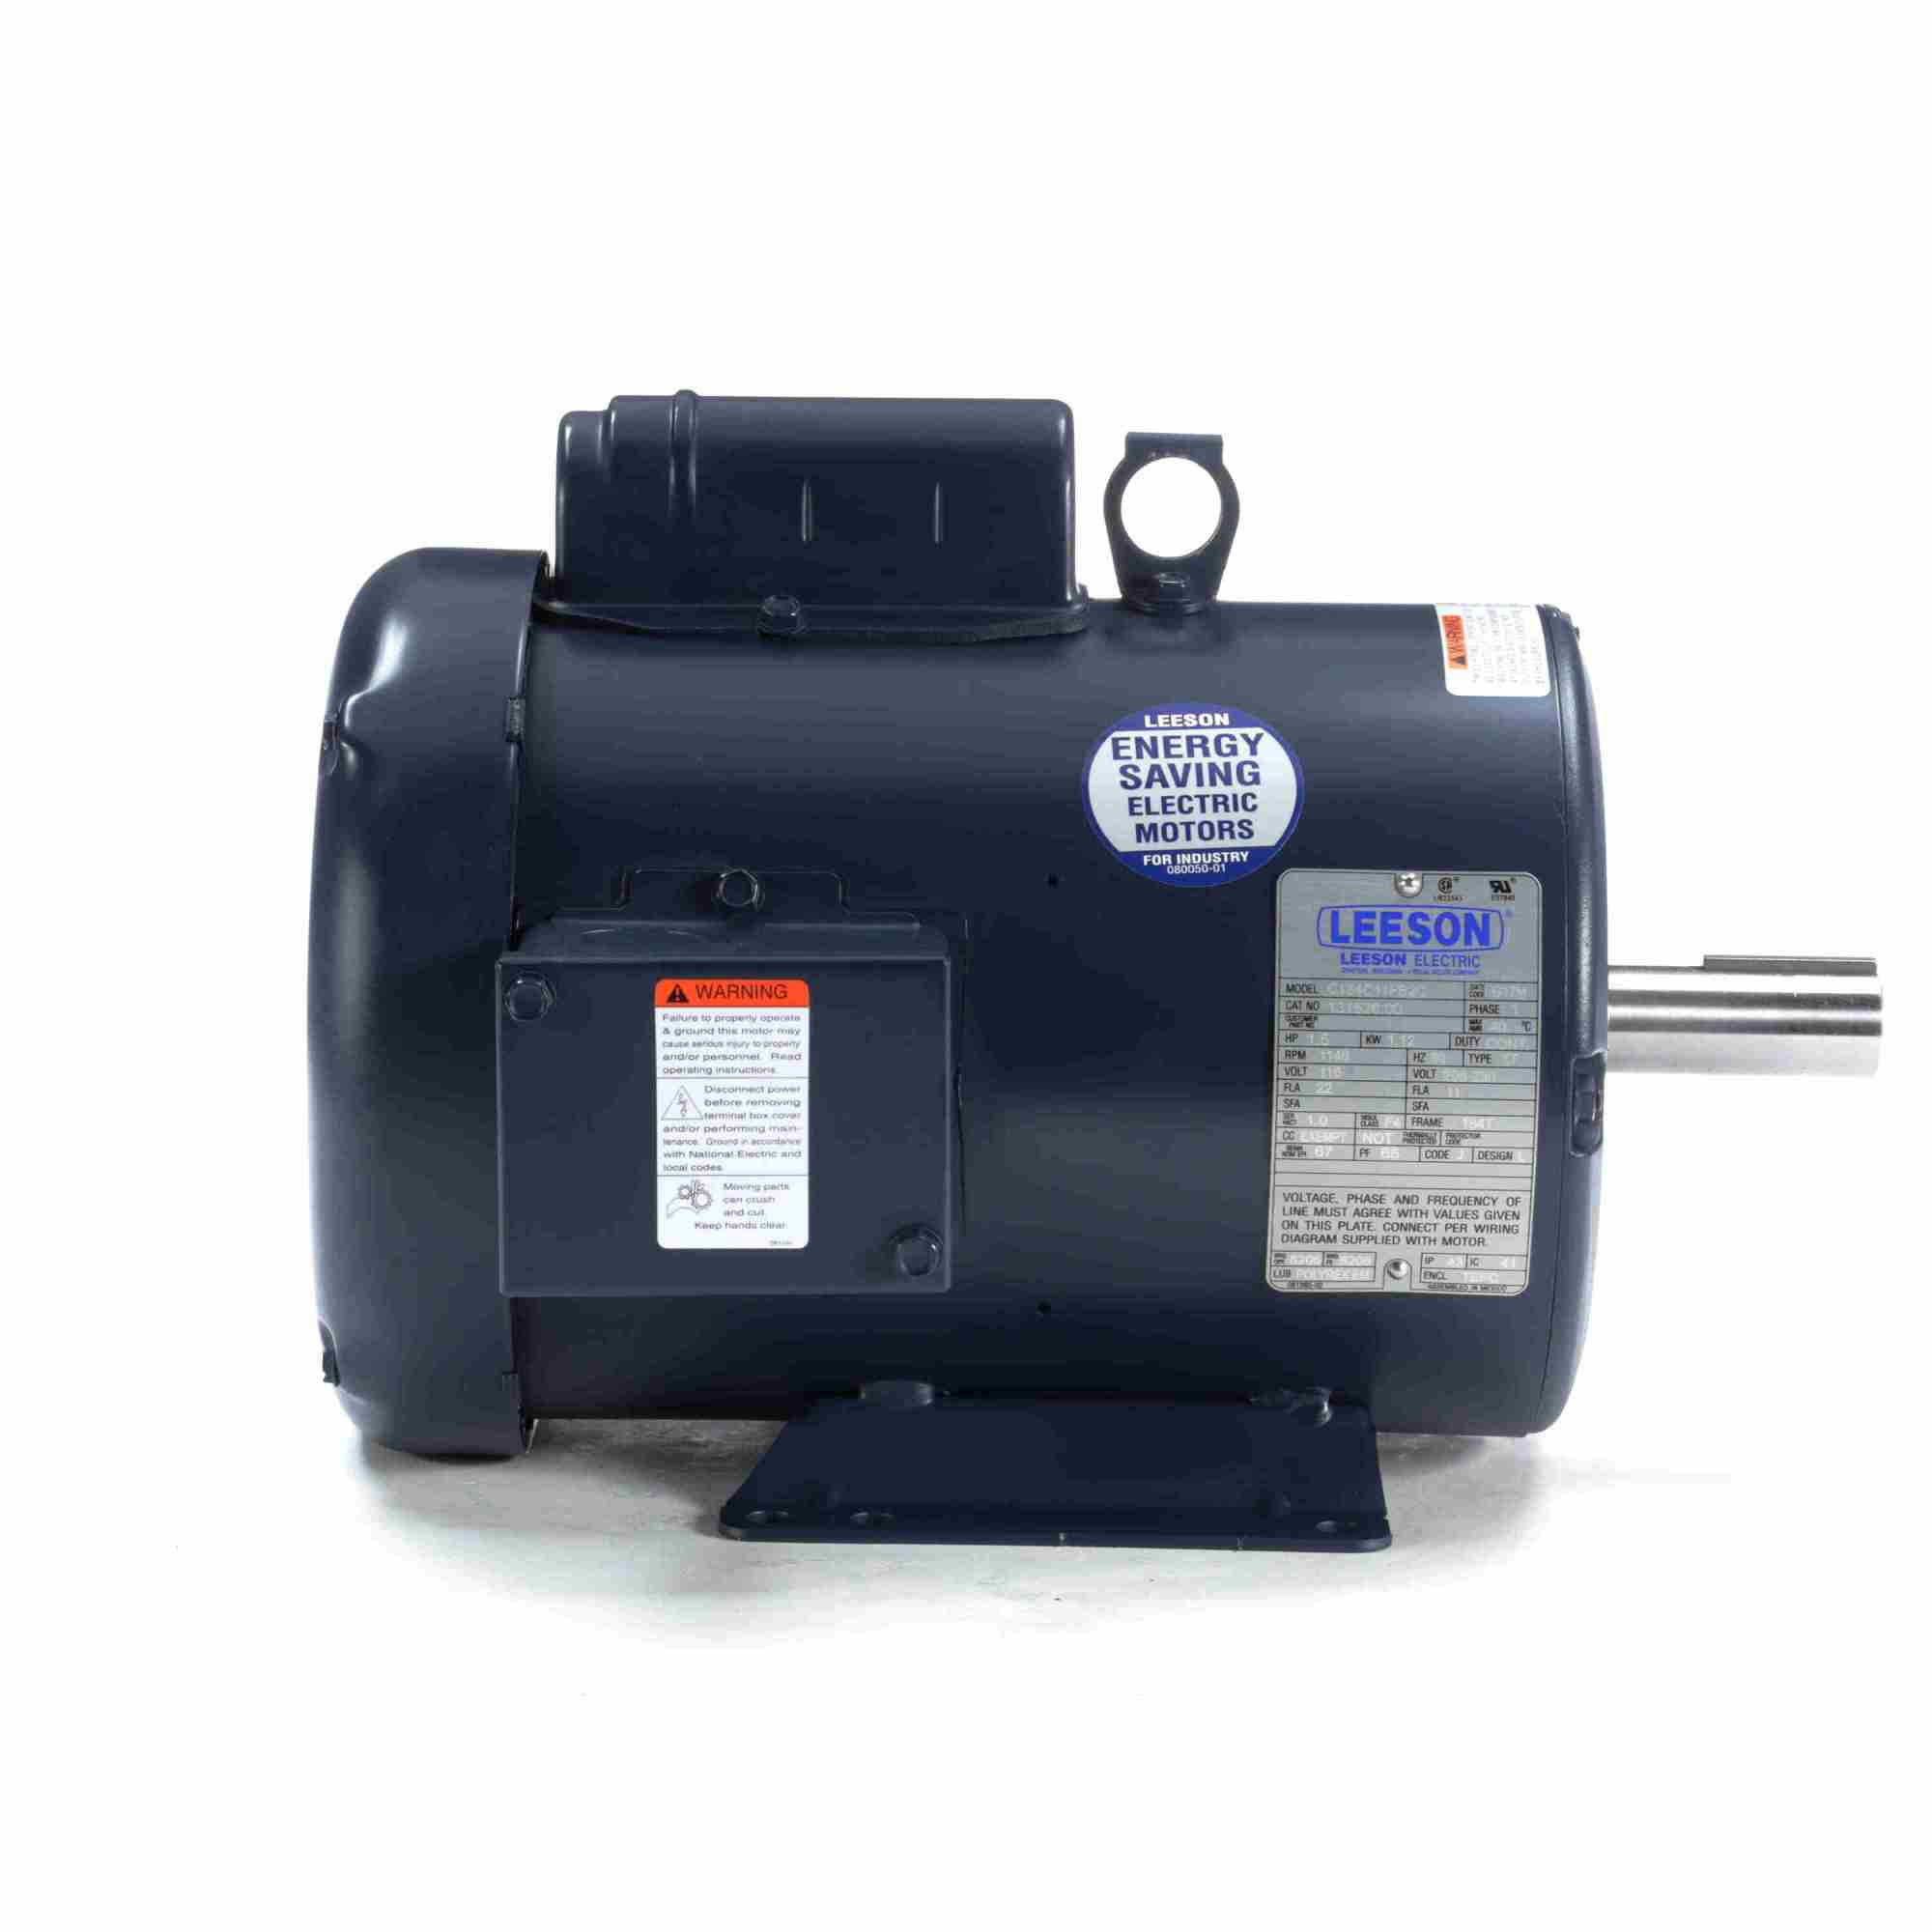 hight resolution of 131526 00 leeson 1 5hp electric motor 1200rpm 1